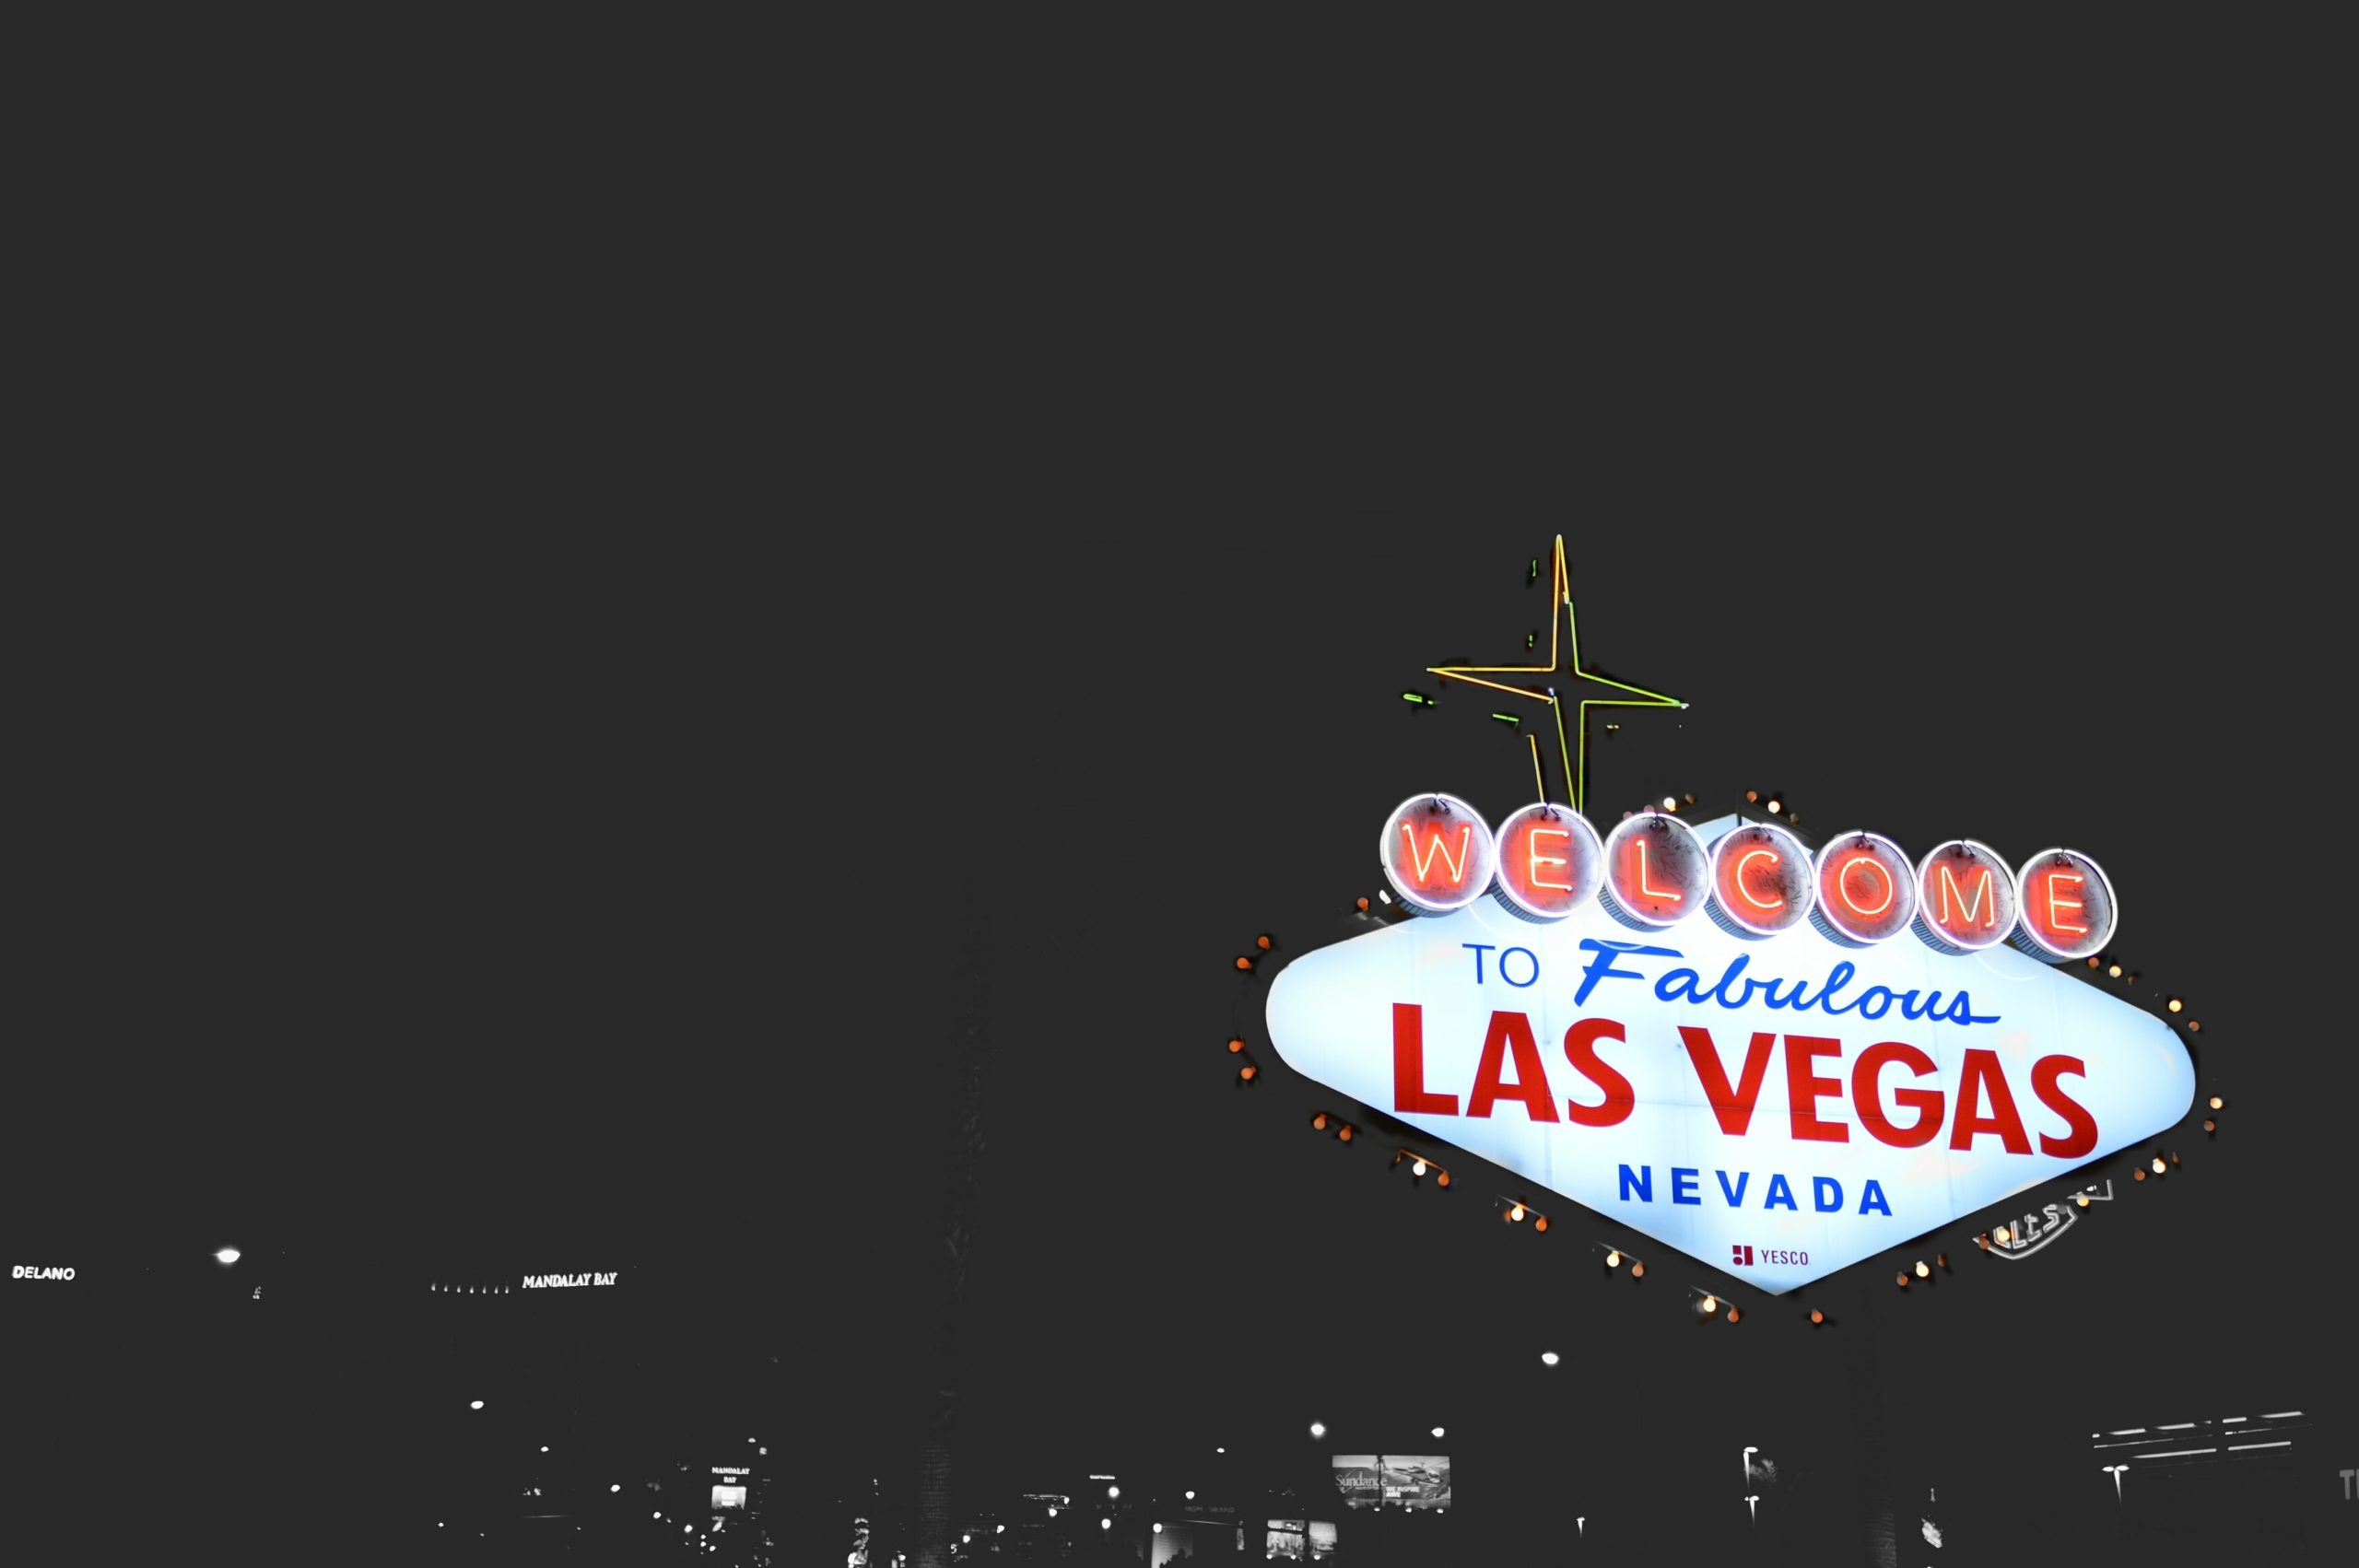 4 Crazy Random Facts About Las Vegas To Shock You